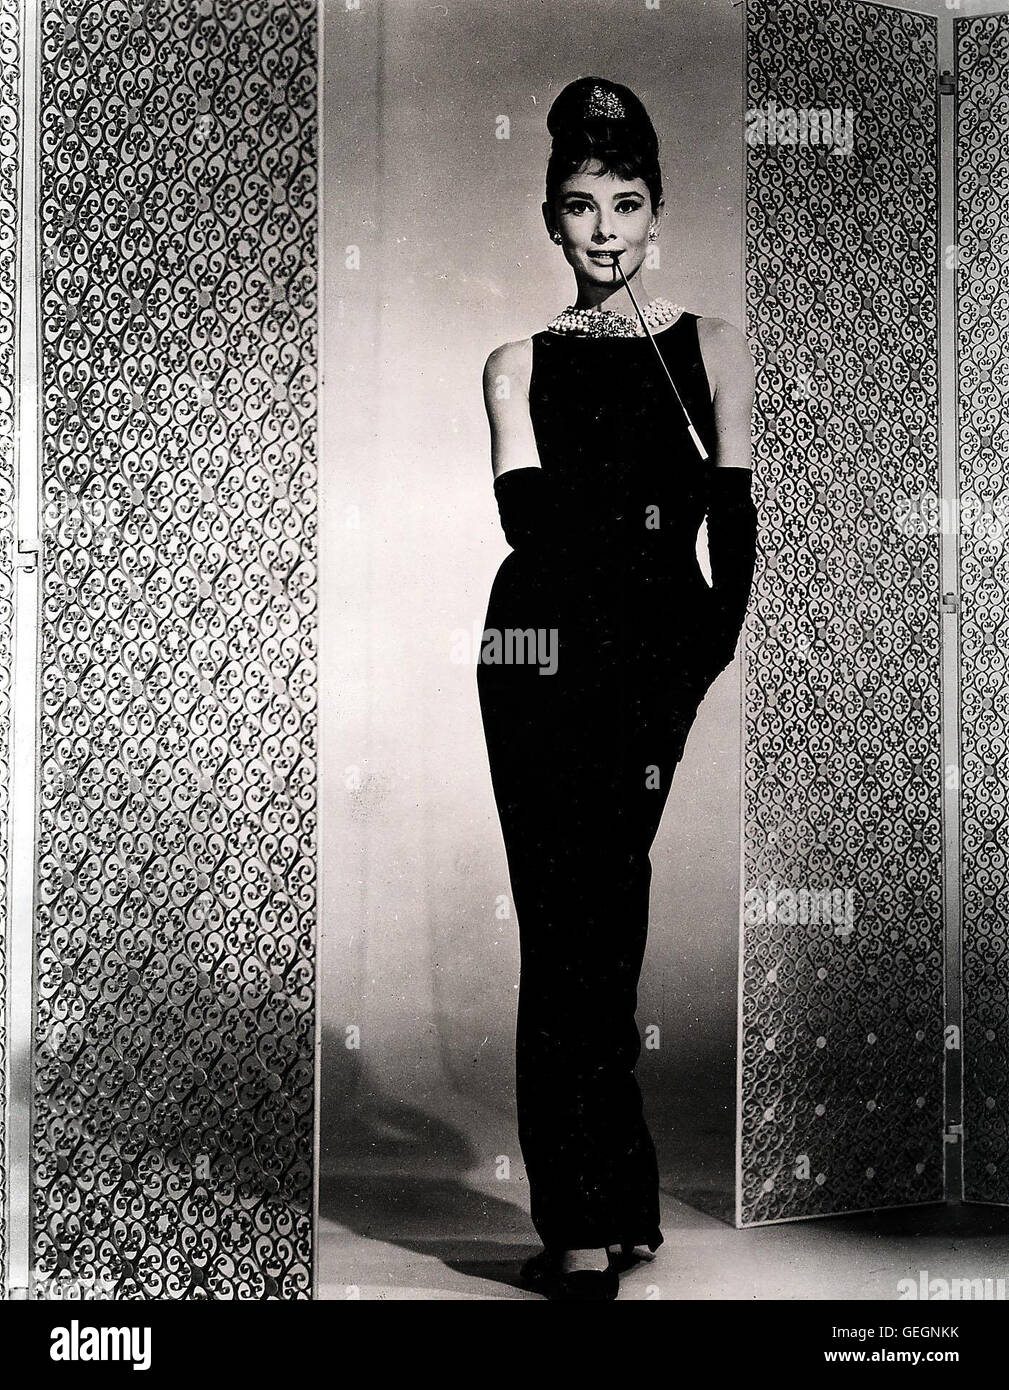 Fr hst ck bei tiffany breakfast at tiffany 39 s audrey for Audrey hepburn pictures to buy